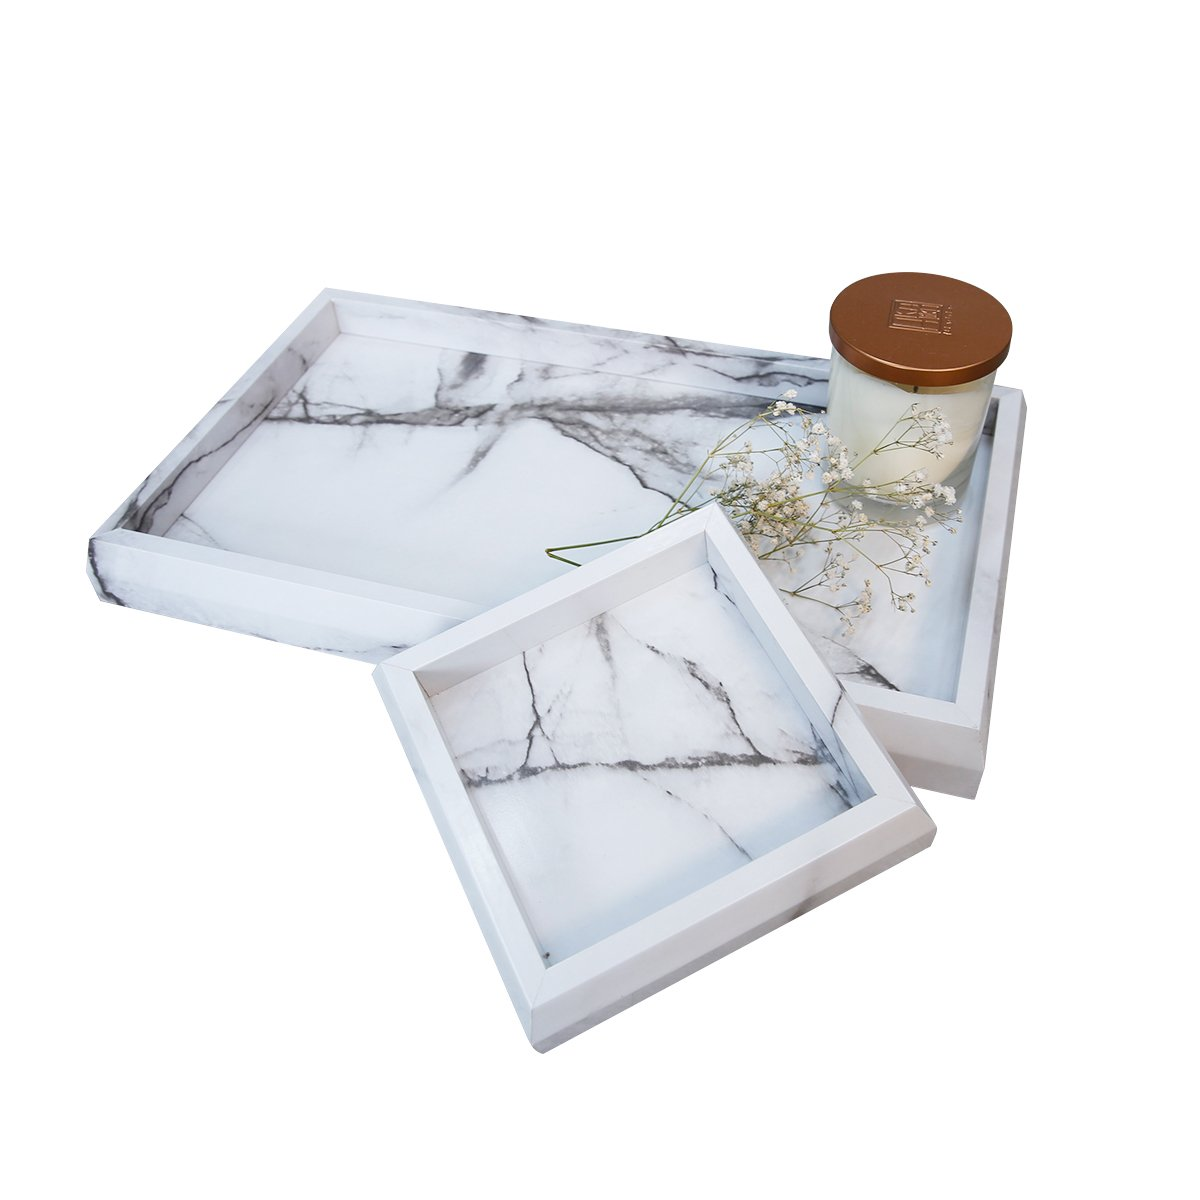 Roomfitters Marble Print Vanity Tray Set, Best Bathroom Catchall Trays for Jewelry Perfume, Upgraded Version Water Resistant, Anti-Scratch by Roomfitters (Image #1)